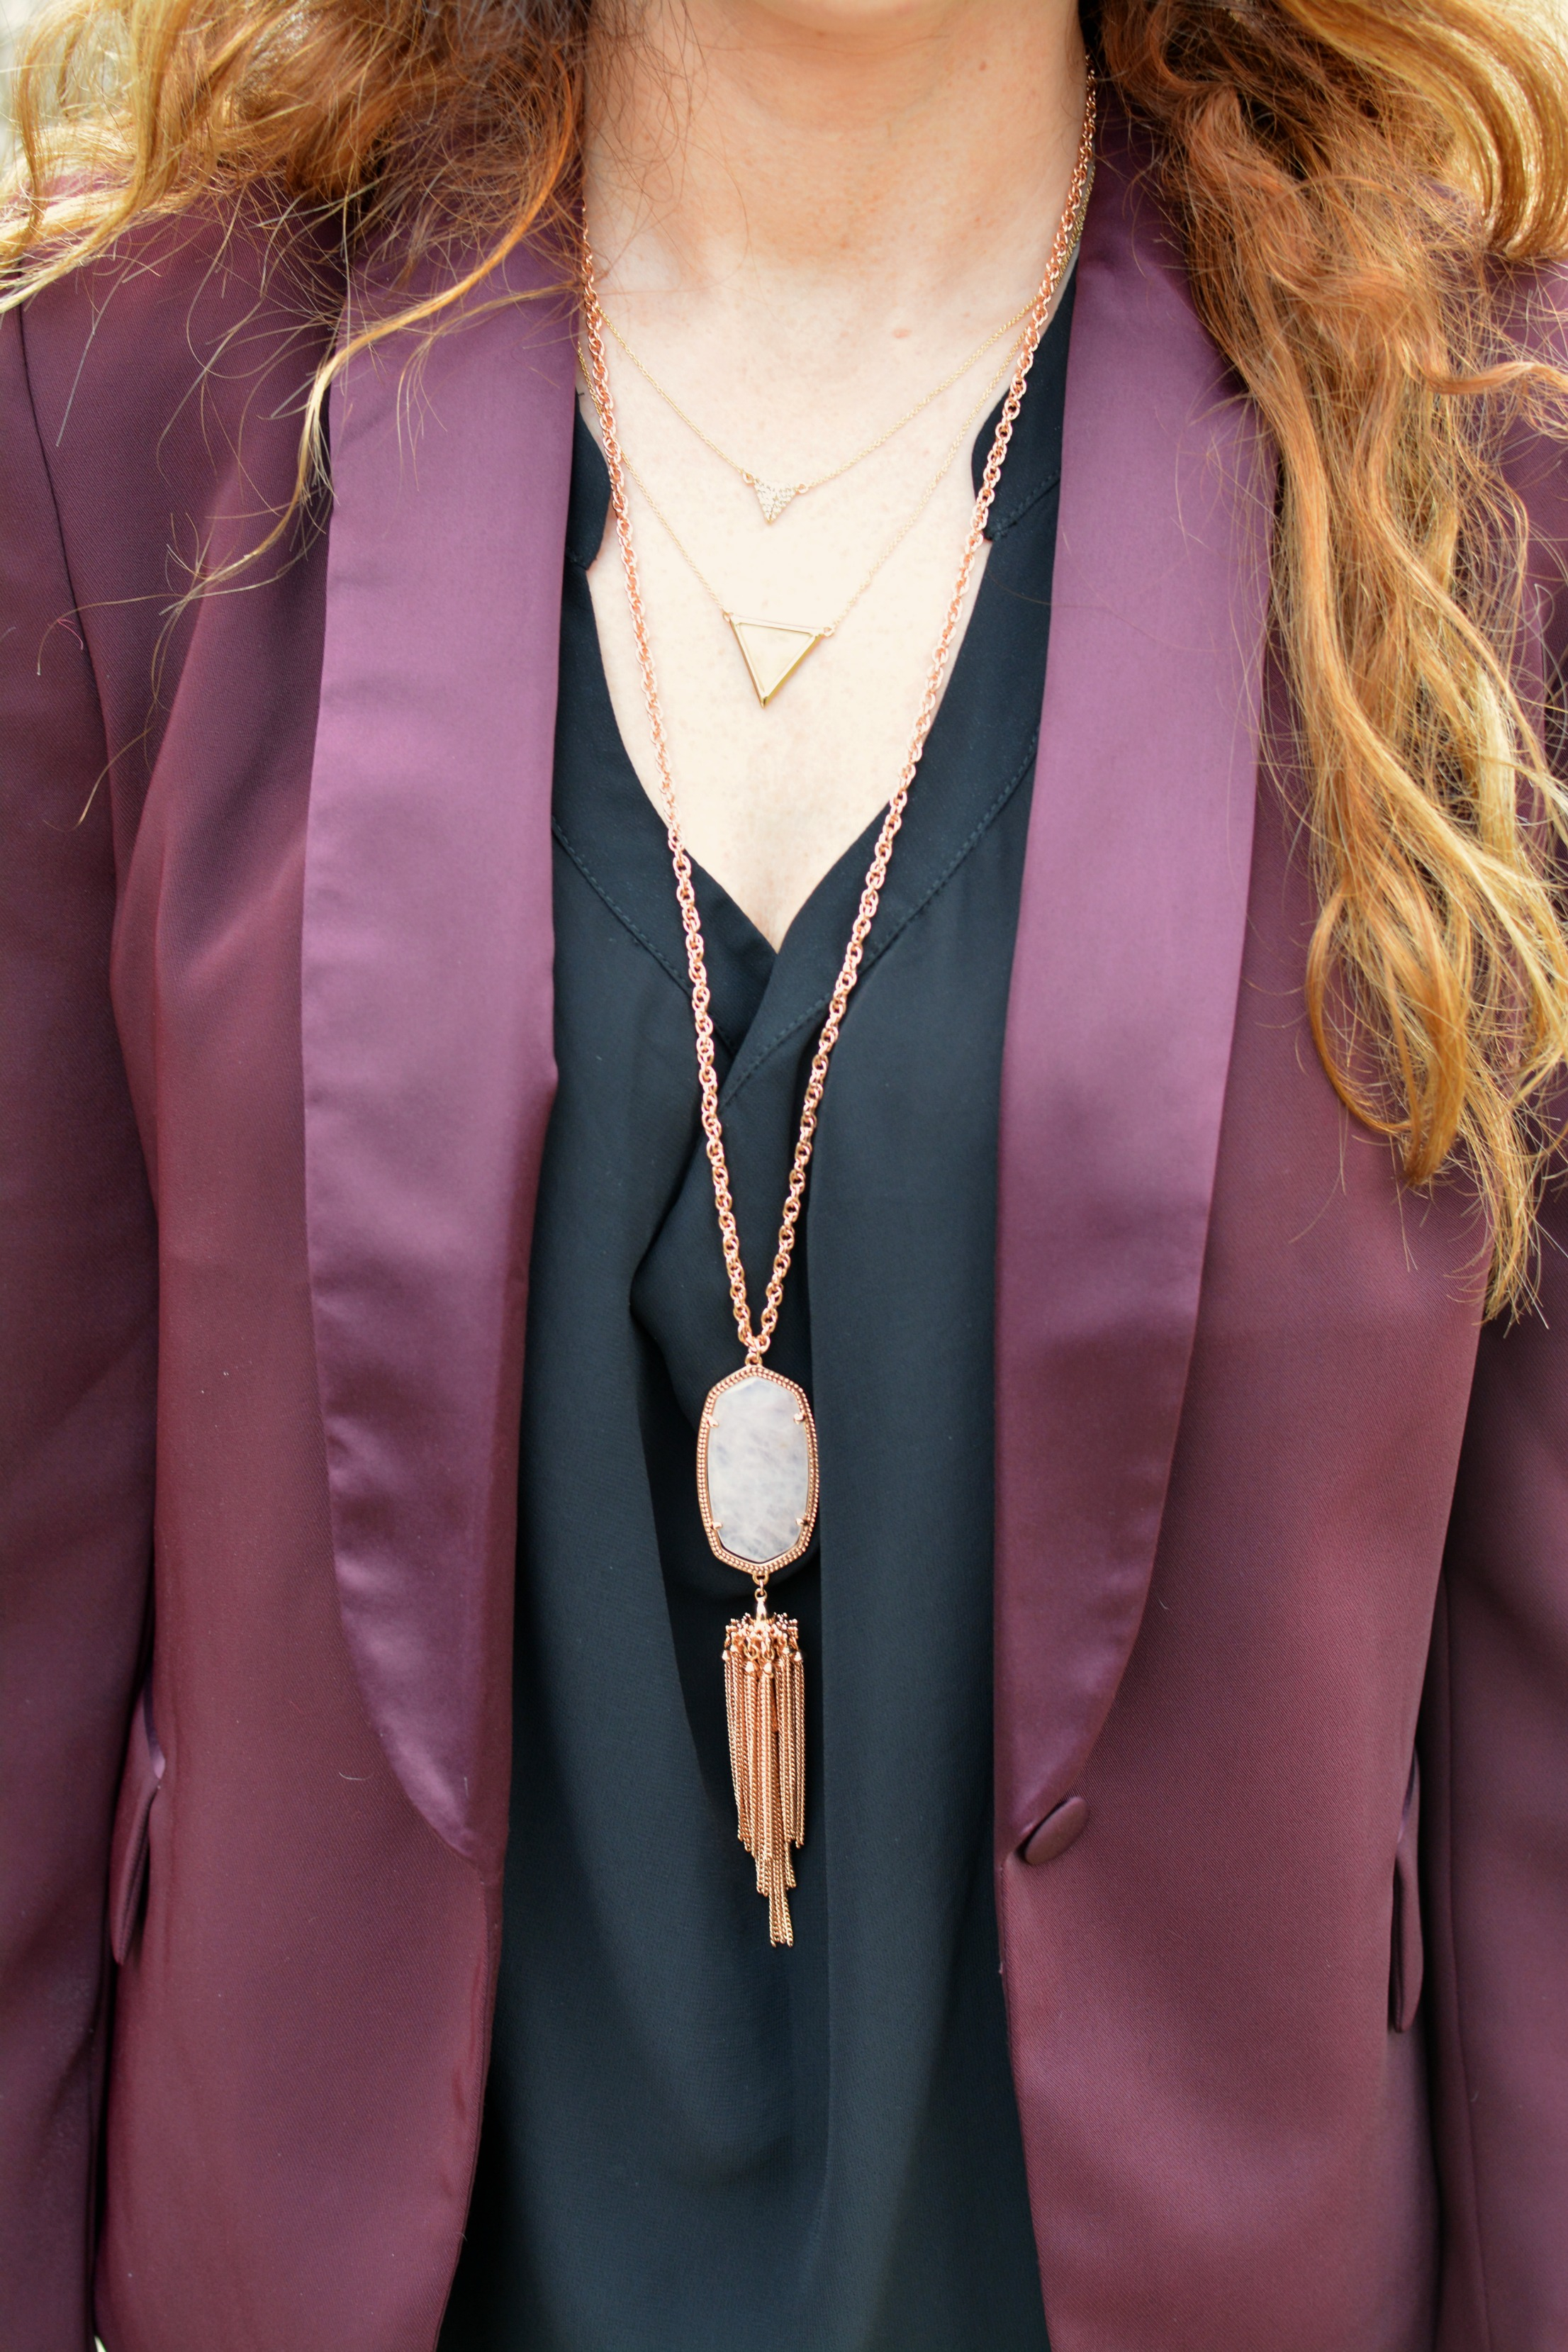 Ashley from LSR in a burgundy blazer and necklaces from Kendra Scott and House of Harlow